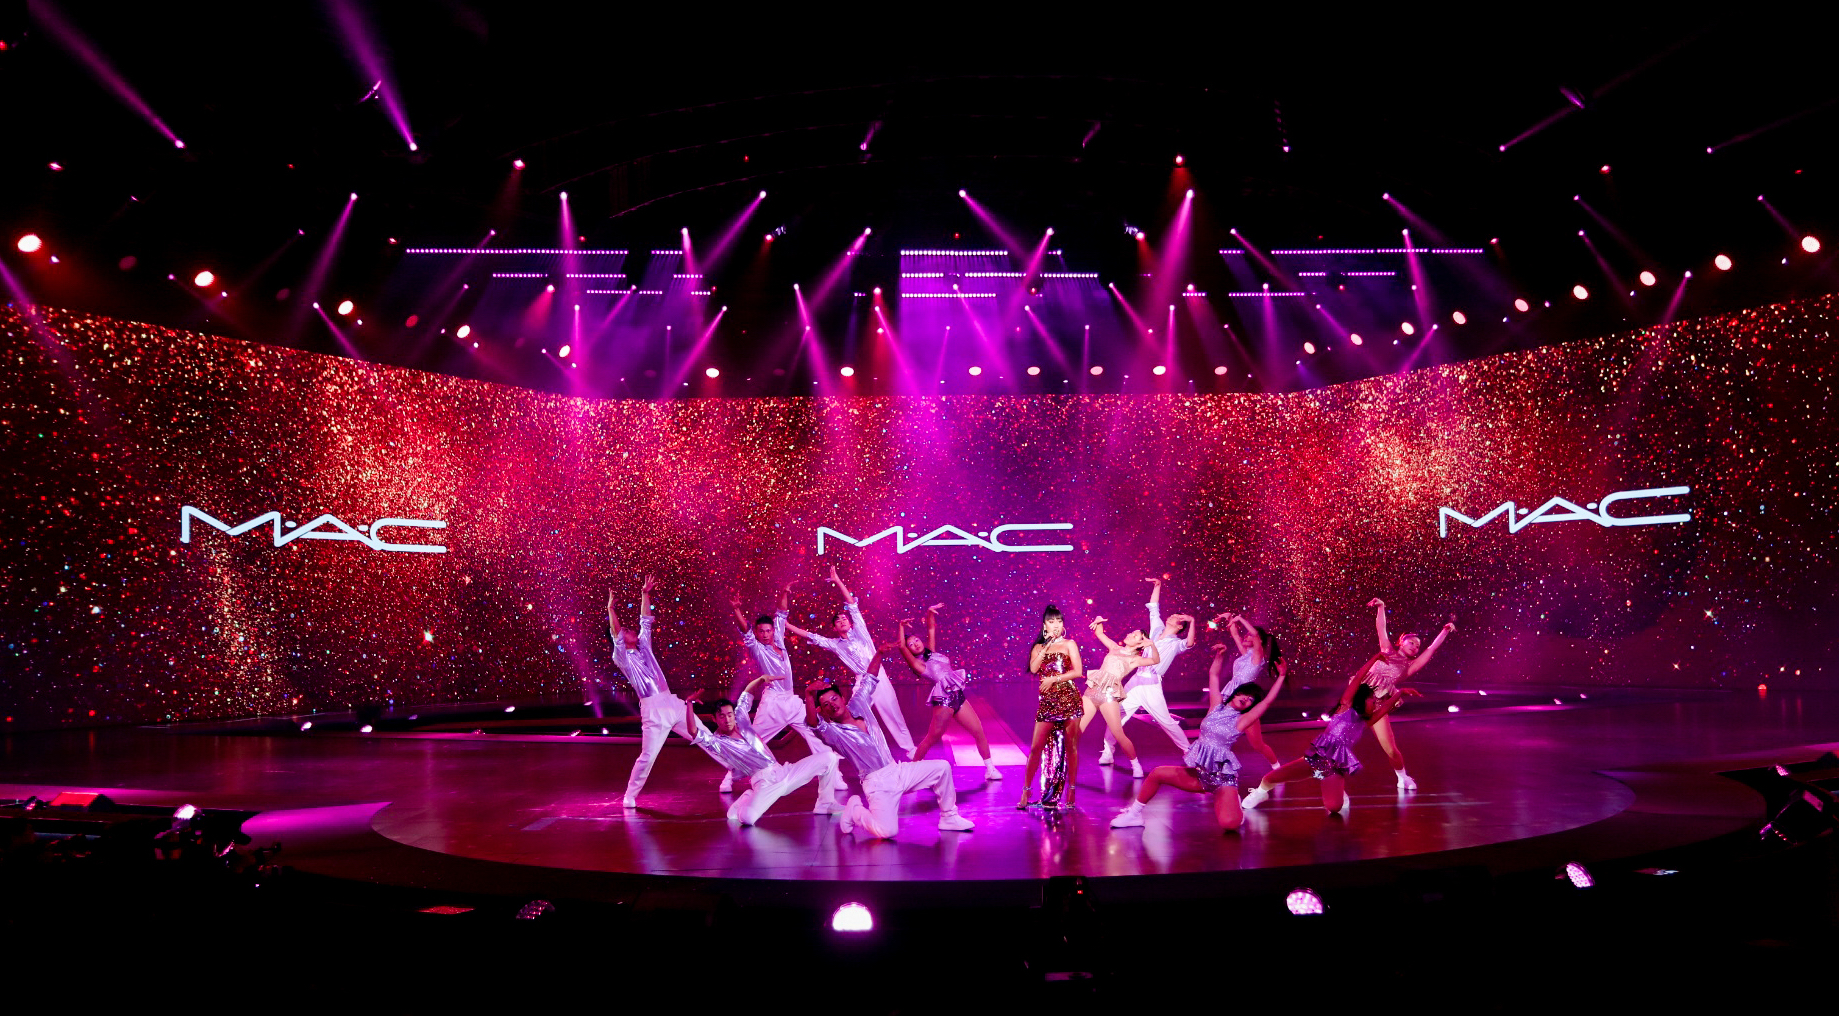 Mac performance at Tmall Collection_10212019 copy